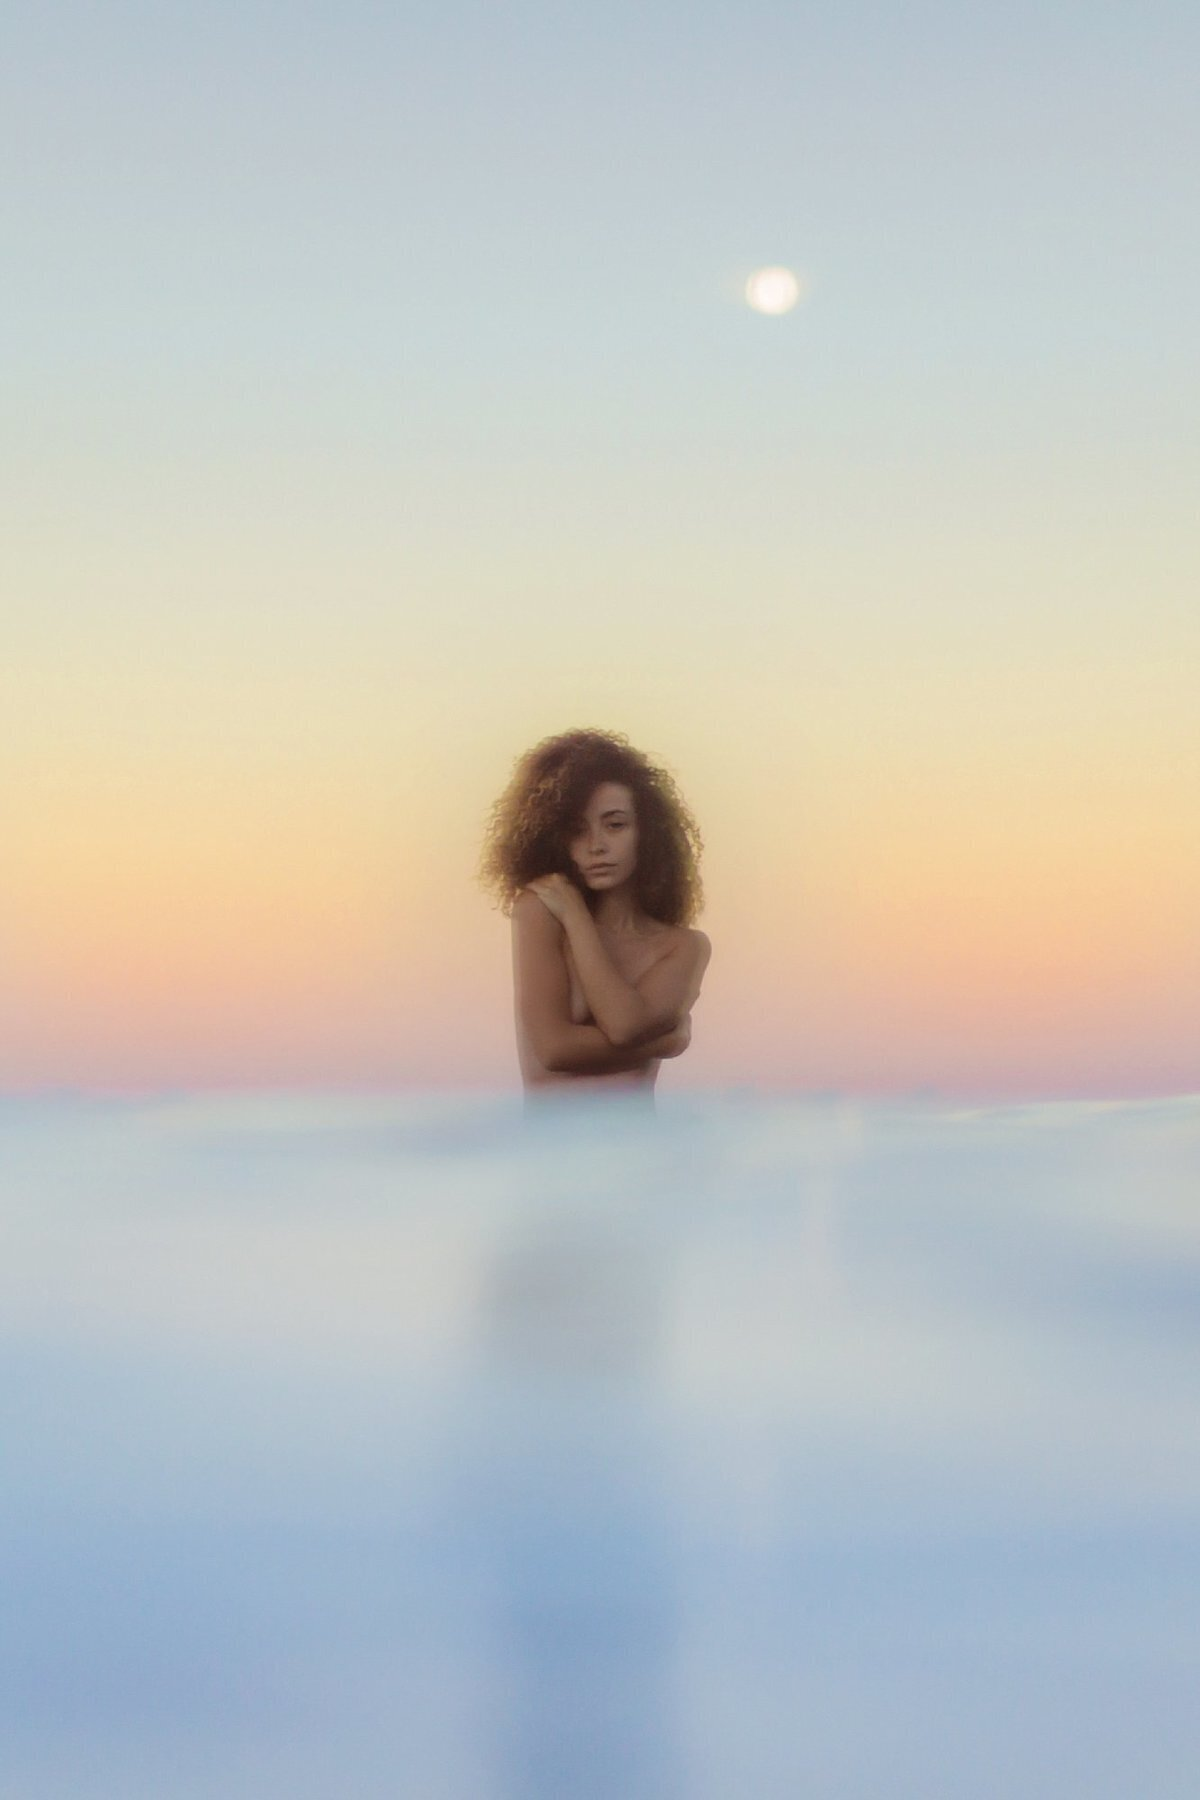 Sunrise pastel tones on Maui with woman holding her chest in the water